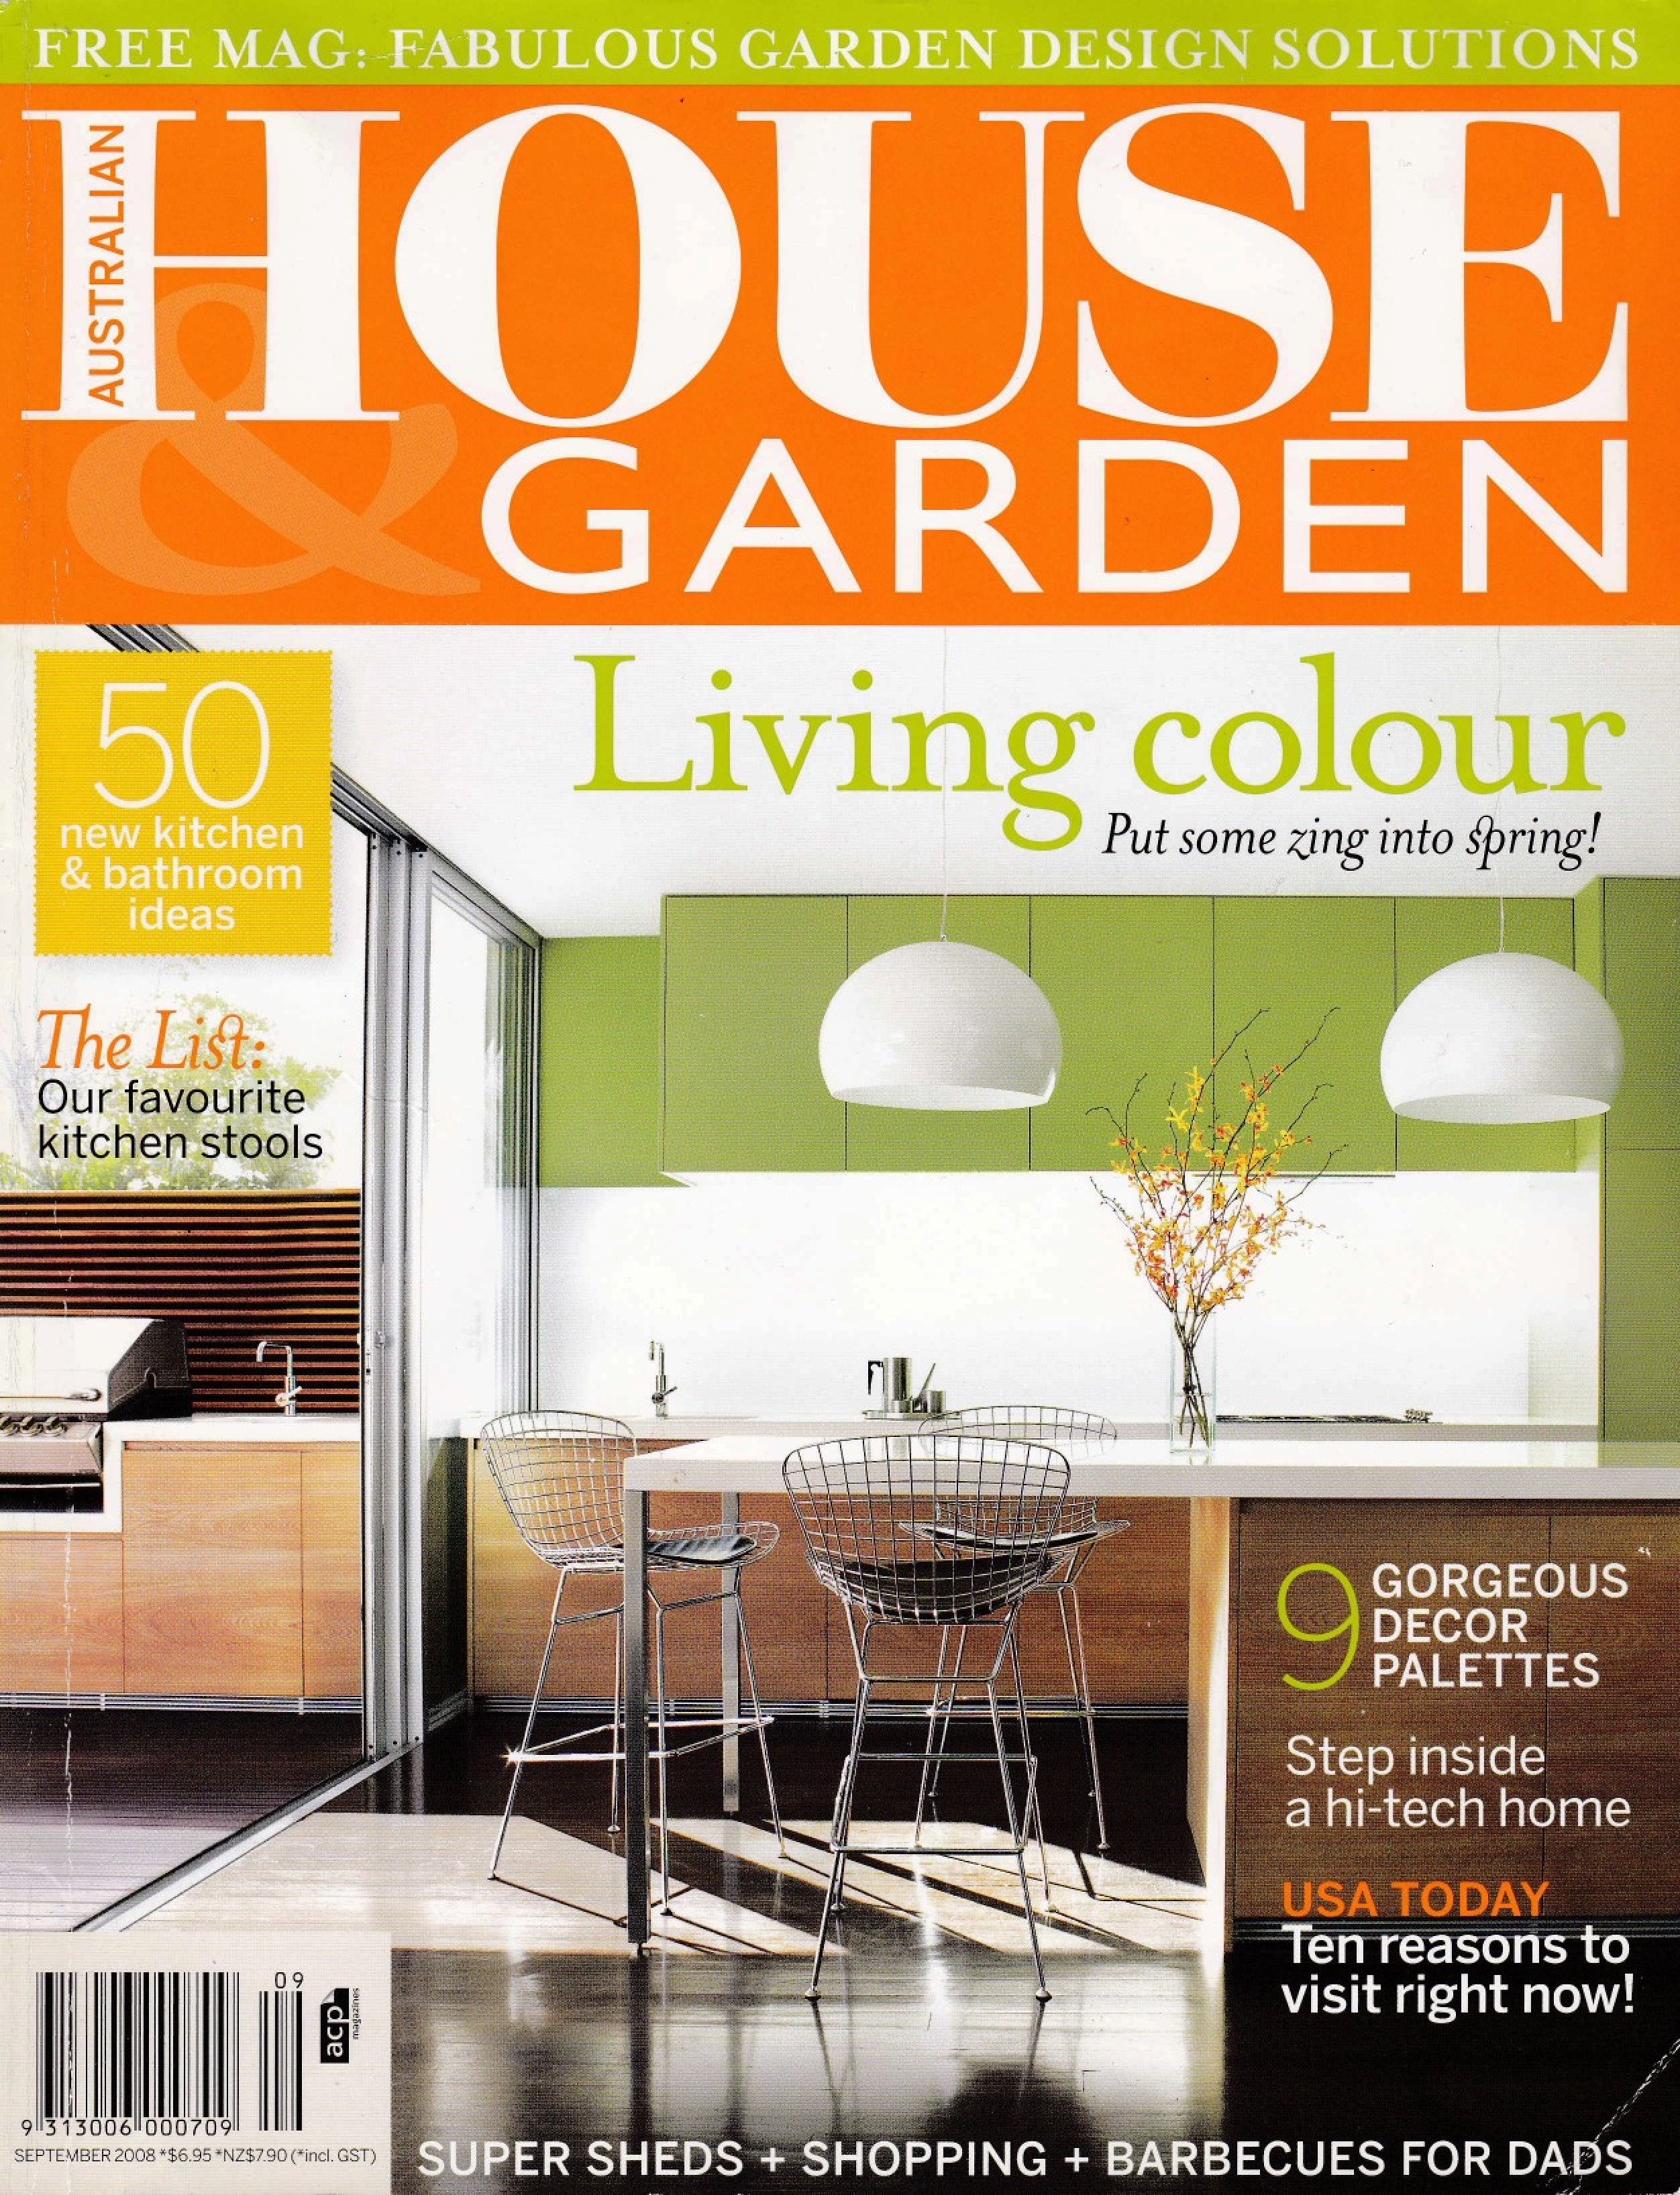 http://logieinteriors.com.au/new/wp-content/uploads/2015/06/House-and-Garden-Mag-Front-Cover-e1436333628618-2504x3272.jpg